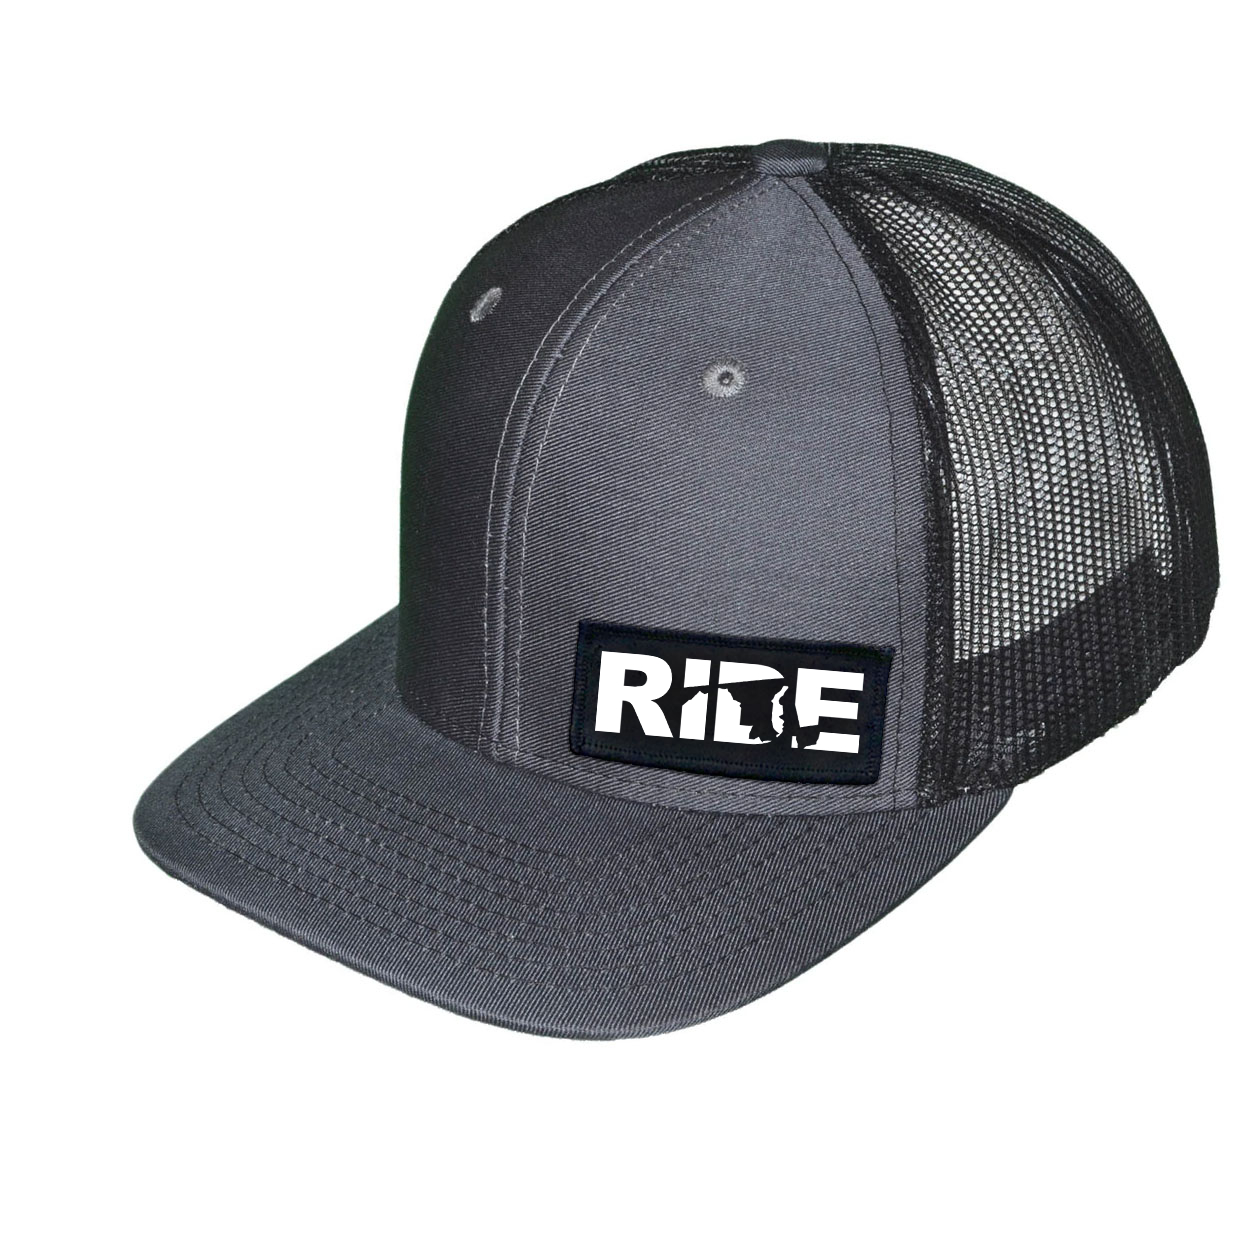 Ride Maryland Night Out Woven Patch Snapback Trucker Hat Dark Gray/Black (White Logo)